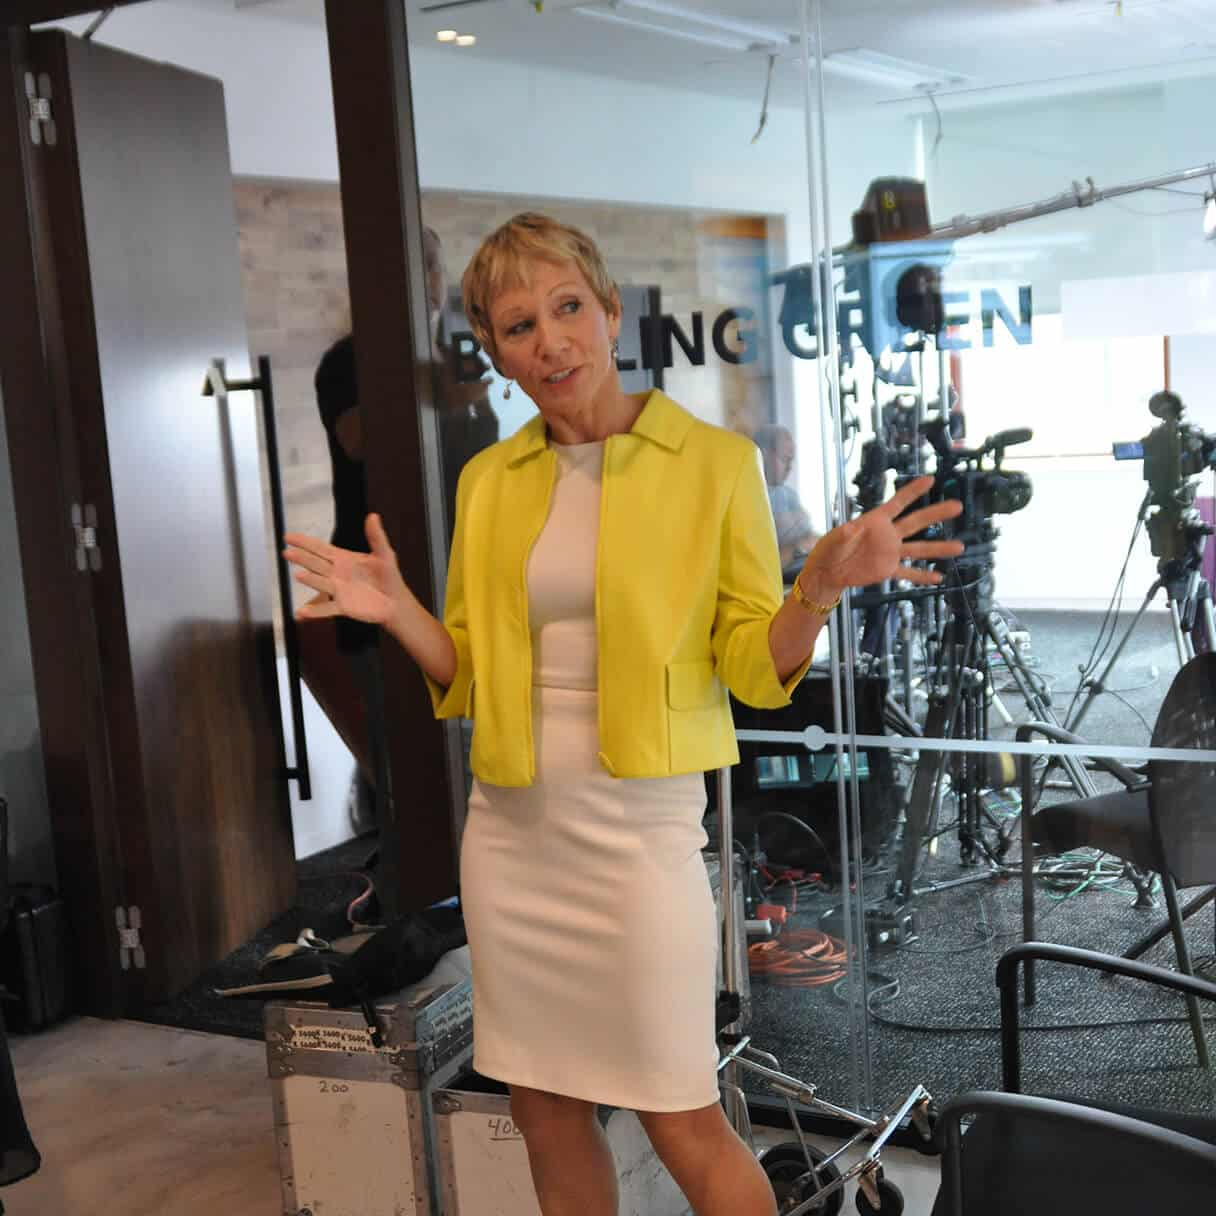 Barbara Corcoran, Image courtesy of Linkedin Pulse, Image Credit : Jacqueline Zaccor